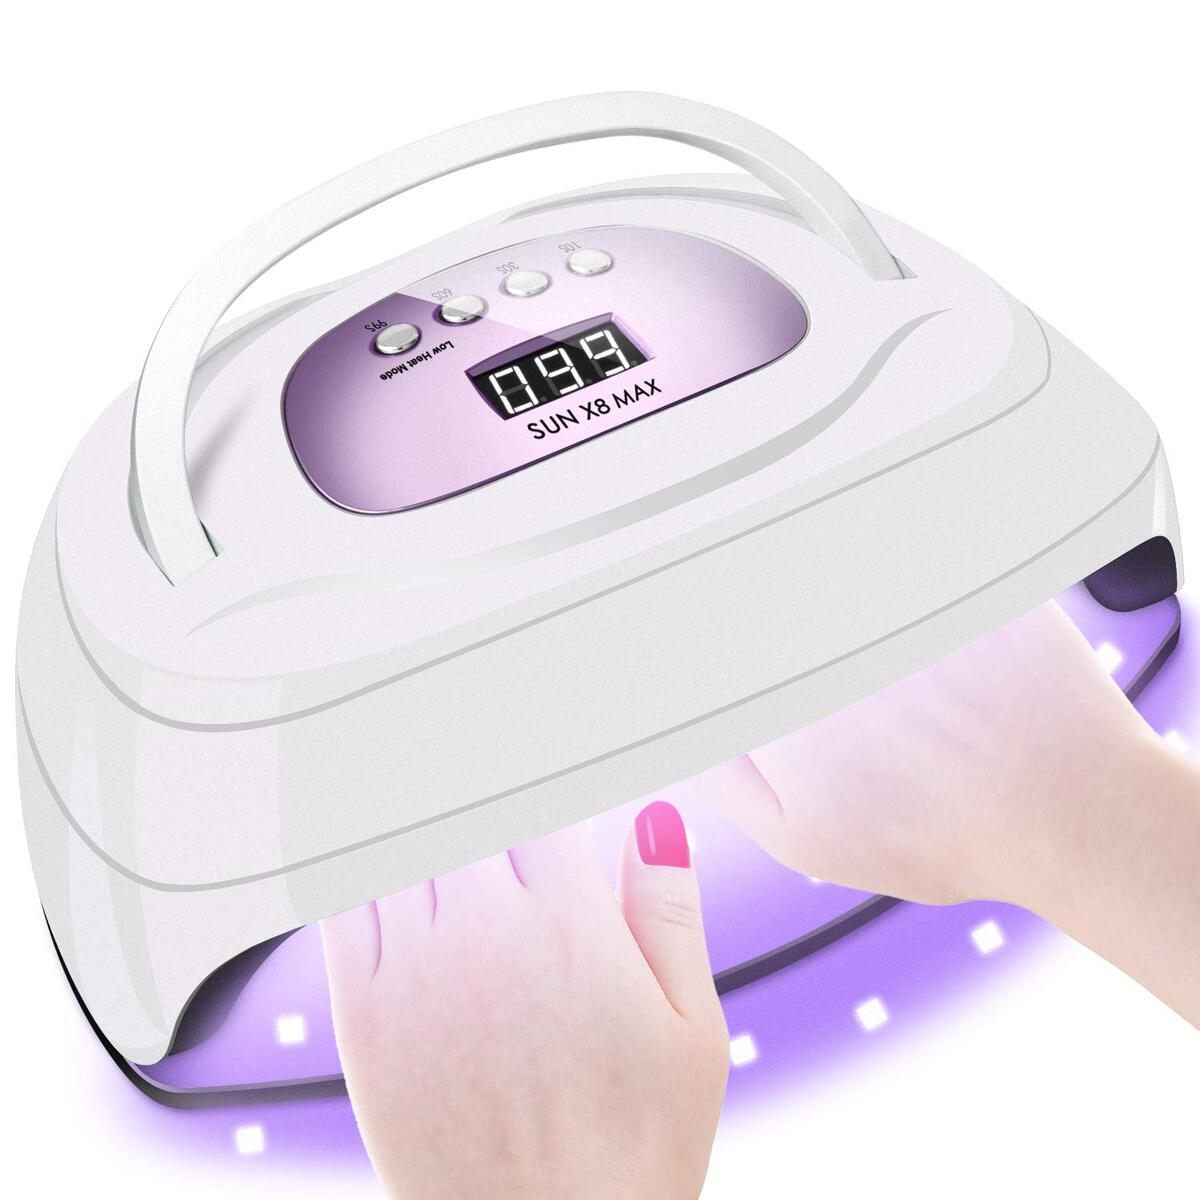 150W UV LED Nail Lamp for Gel Polish,Fast LED UV Dryer Nail Curing Light with 57 Lamp Beads Auto Sensor,Profeesional Nail Art Salon Accessories with Portable Handle and Larger Space (Purple)